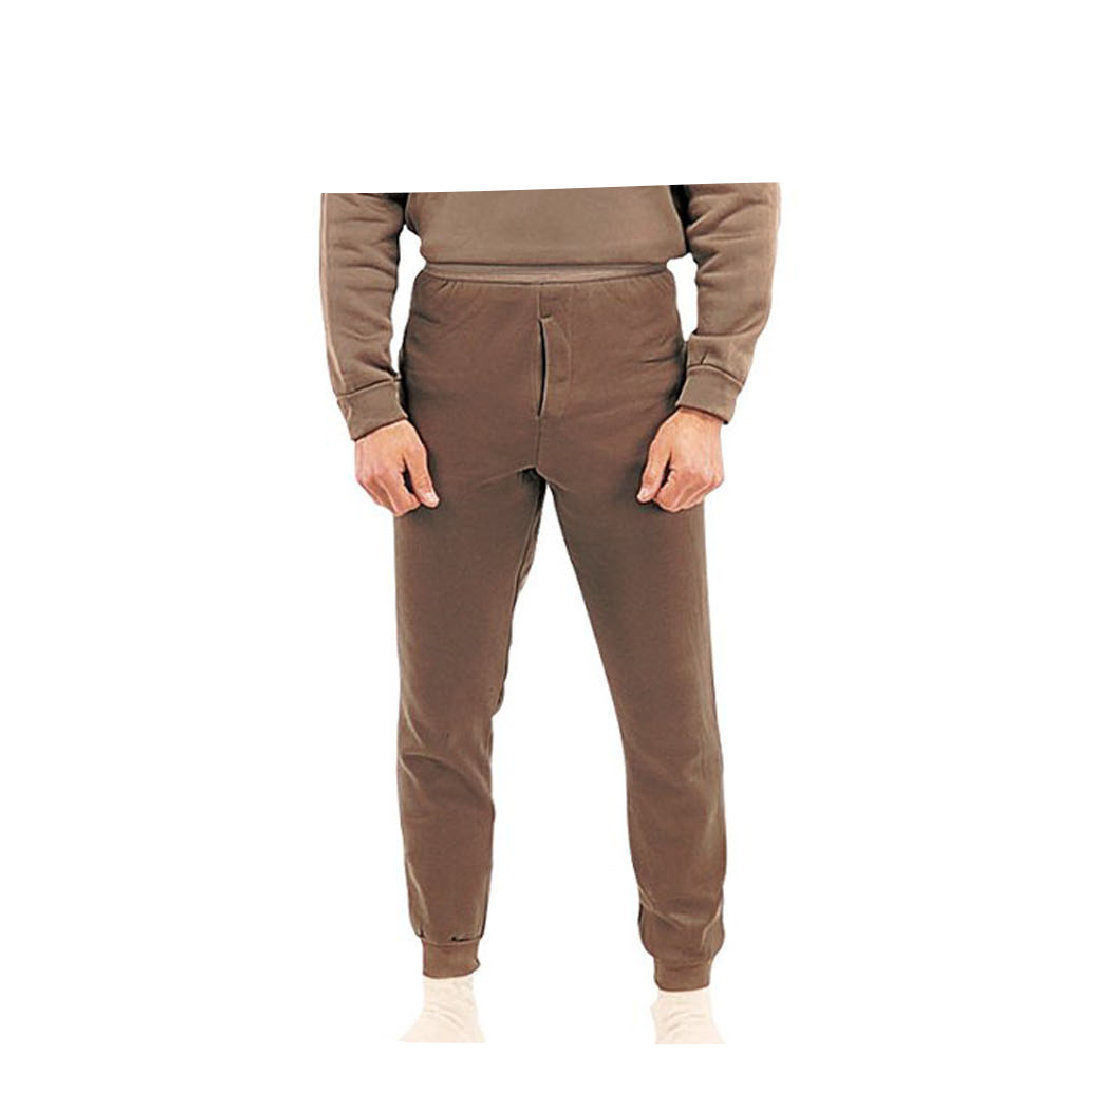 ECWCS Polypro Thermal Long Underwear Pants by Long Underwear